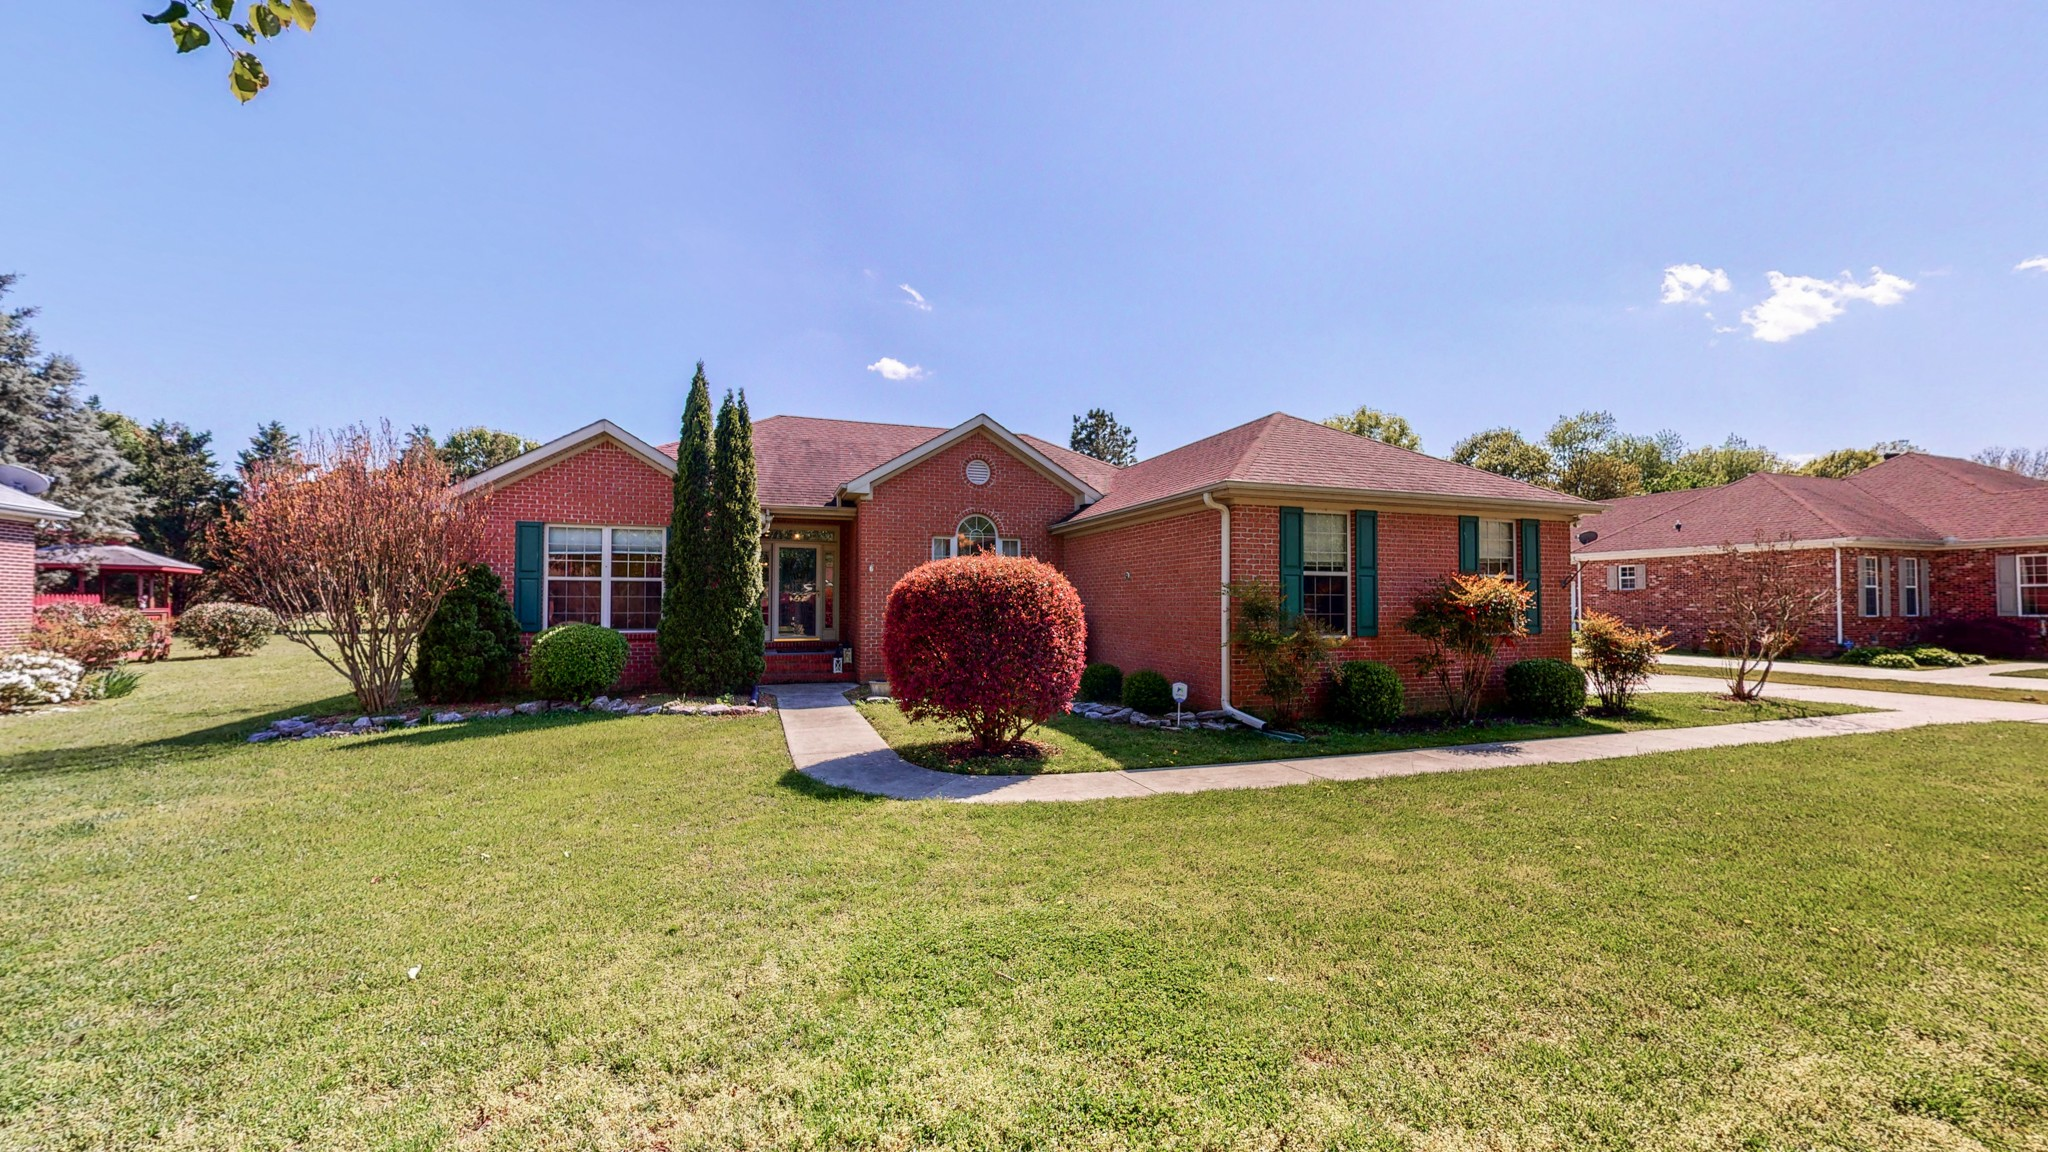 157 Regalwood Dr, Manchester, Tennessee